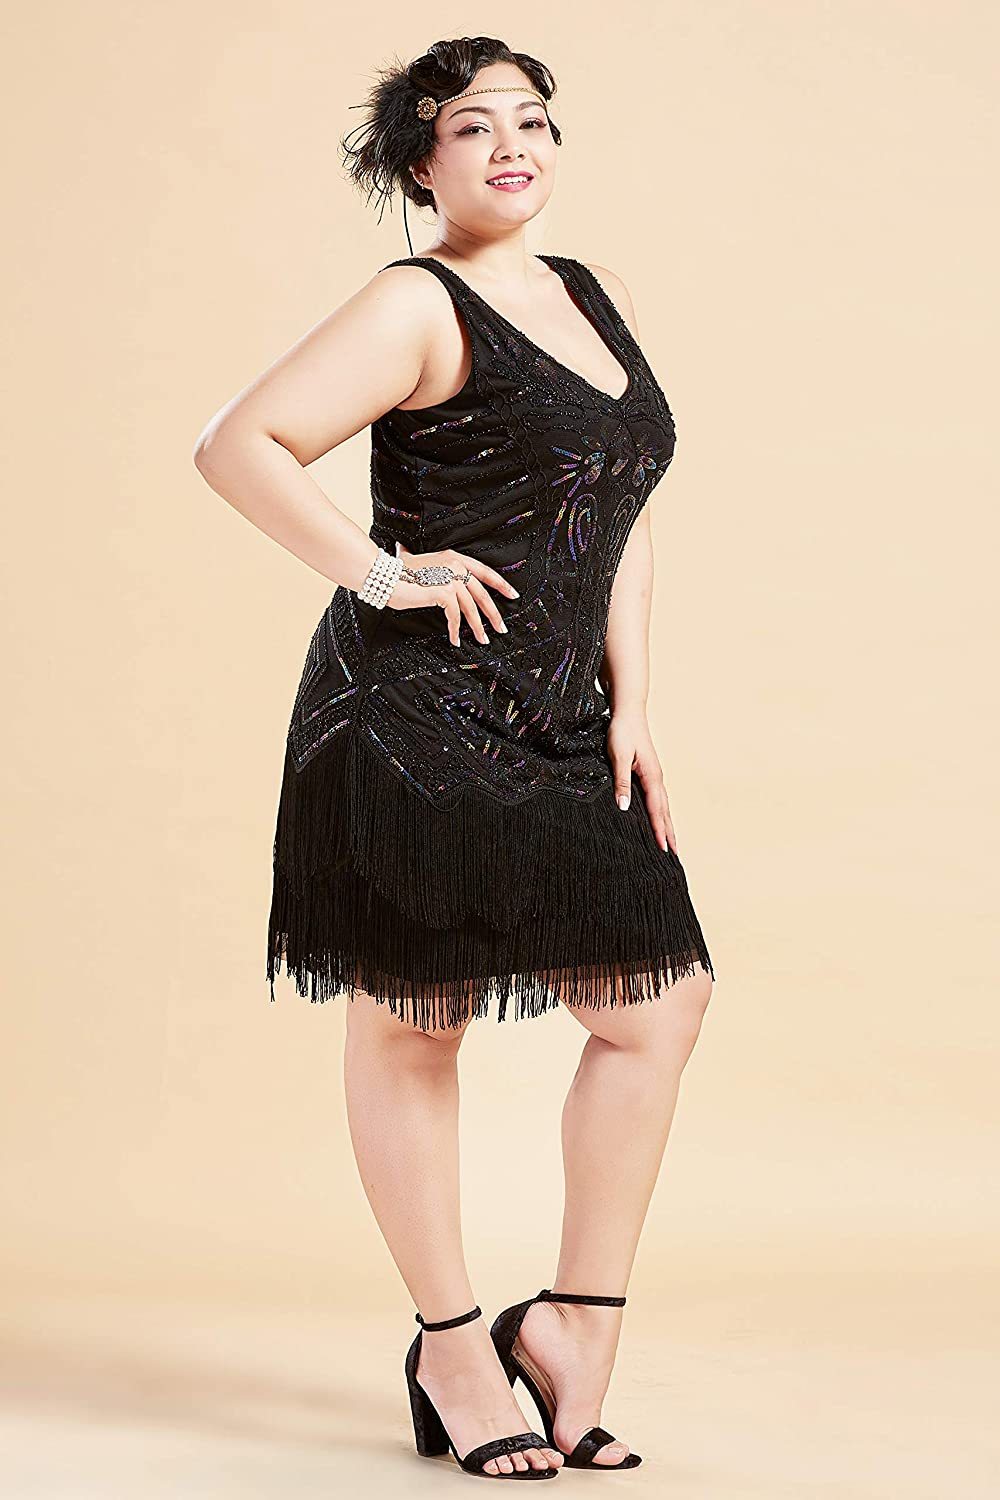 Great Gatsby Dress – Great Gatsby Dresses for Sale BABEYOND Womens Plus Size Flapper Dresses 1920s V Neck Beaded Fringed Great Gatsby Dress $40.99 AT vintagedancer.com